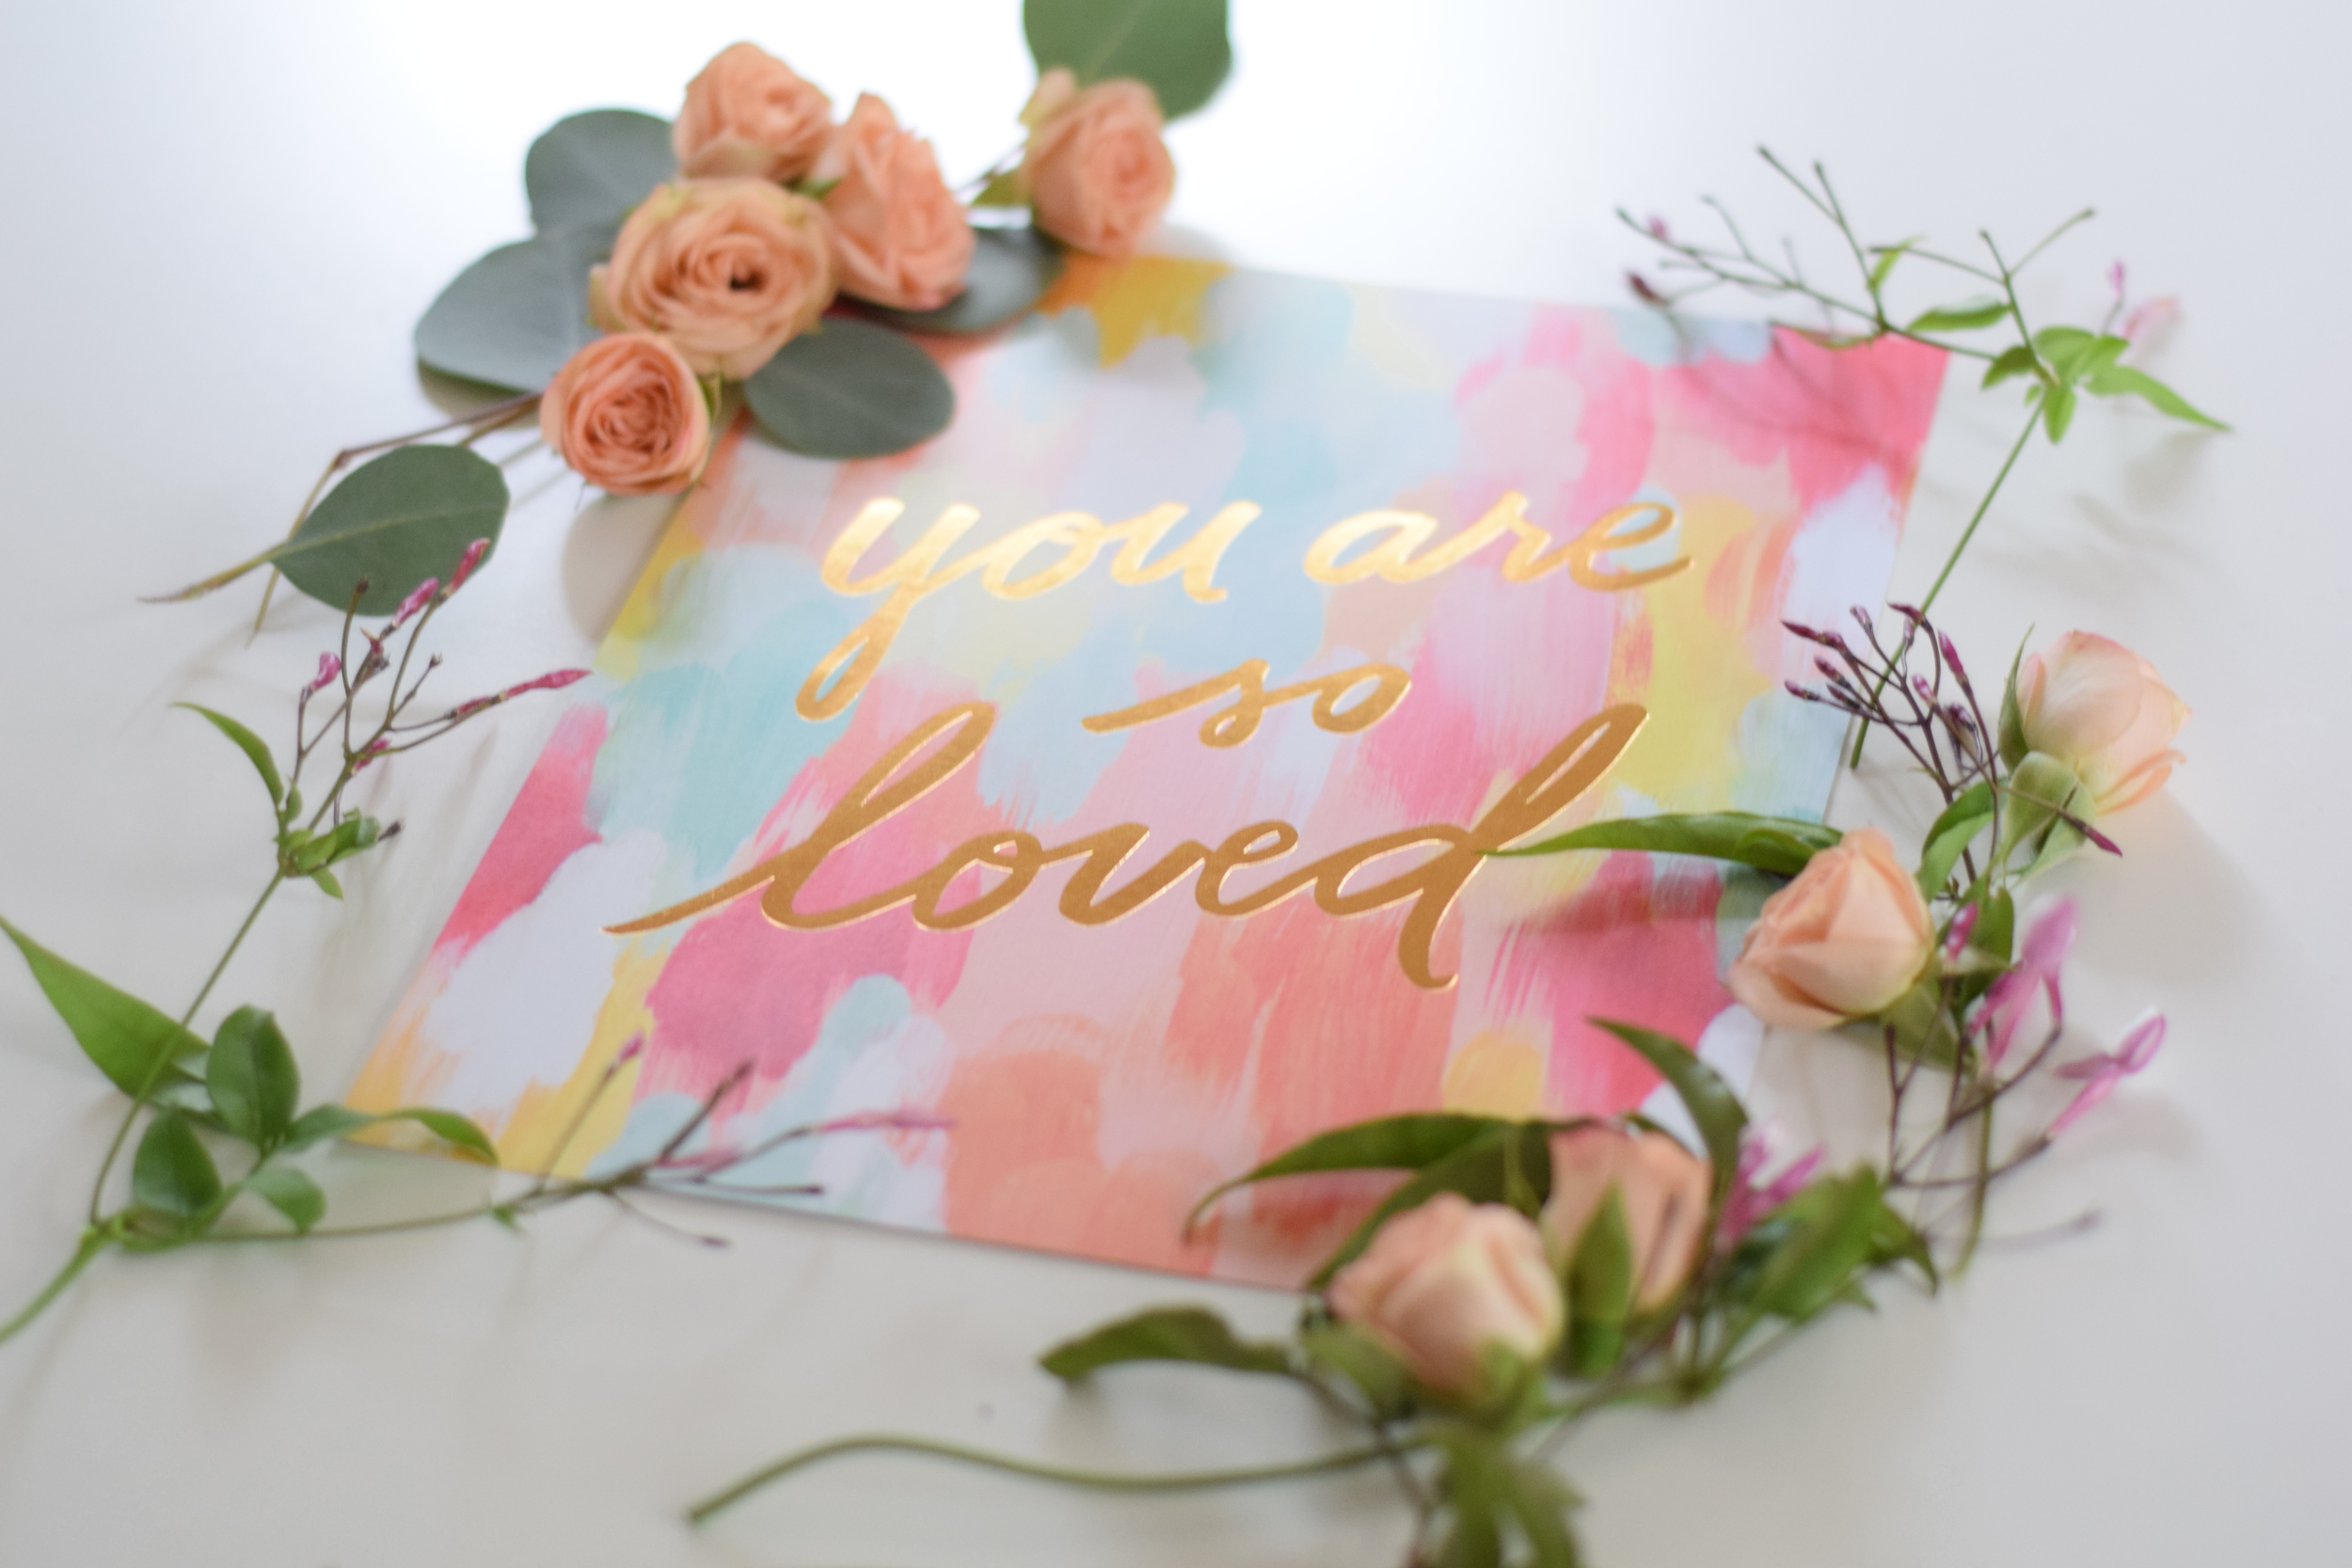 You are so Loved Print, Maxit Flower Design